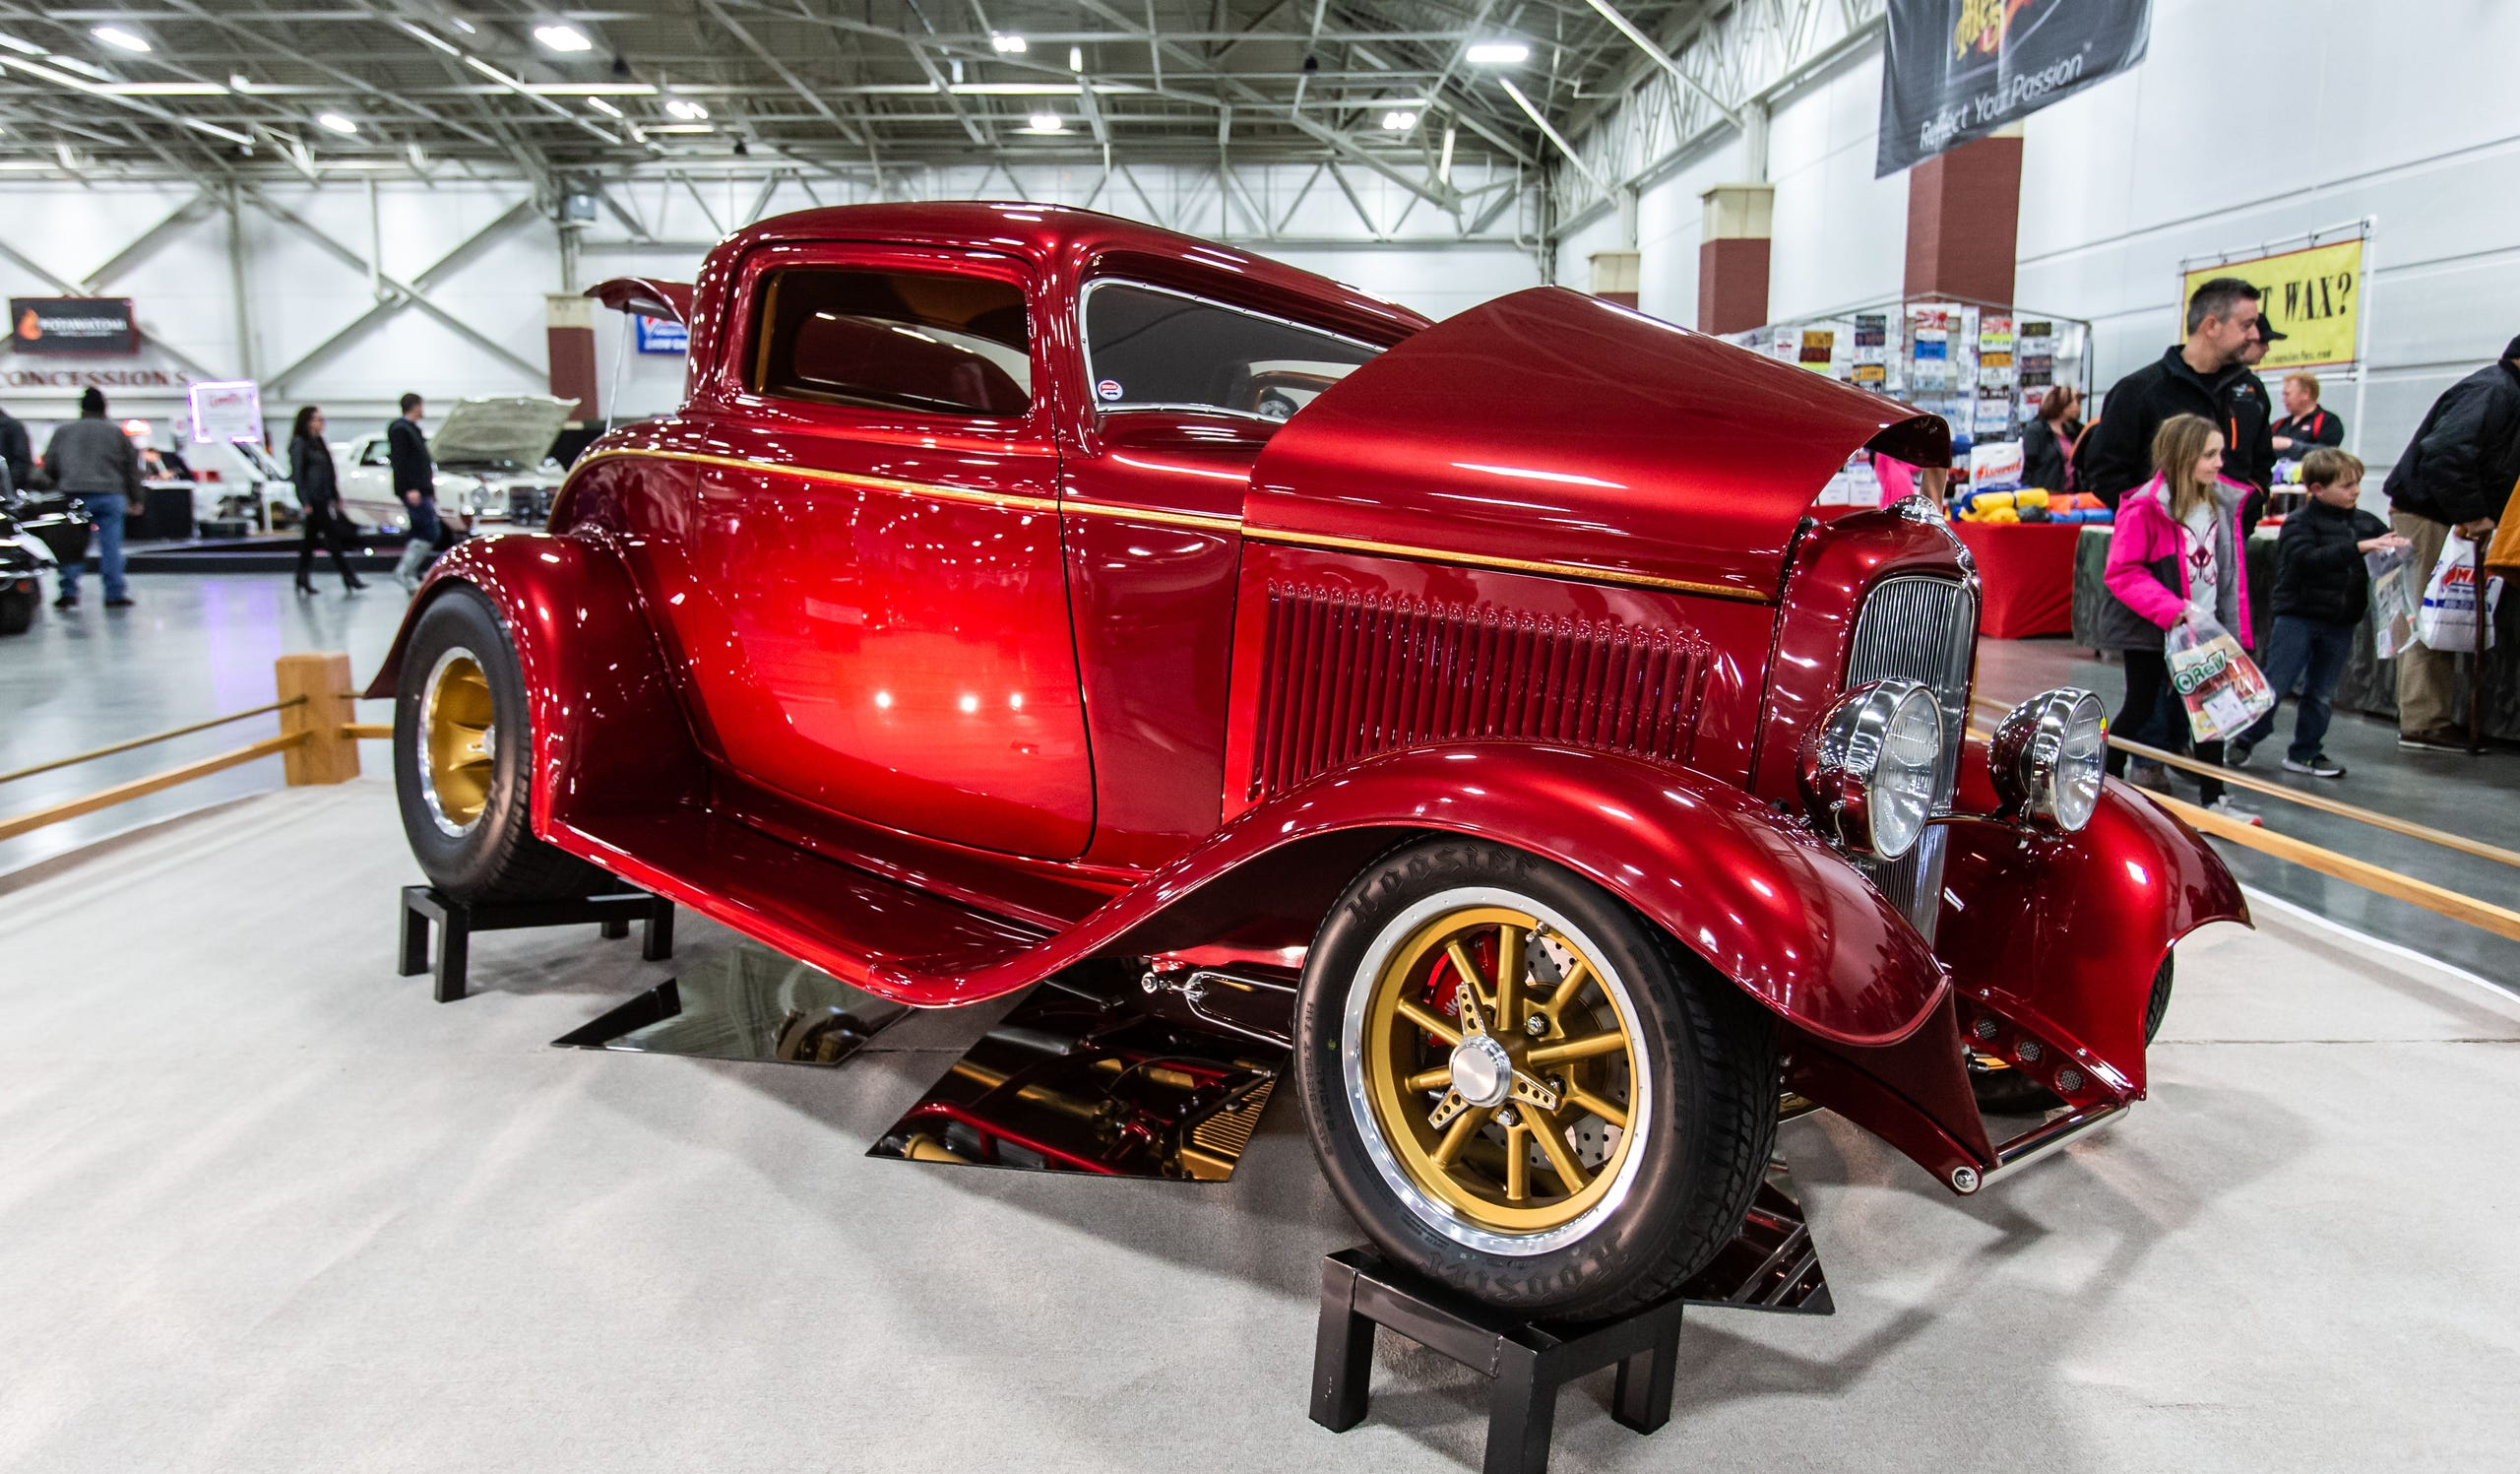 Photos: 57th Annual O'Reilly Auto Parts World of Wheels at State